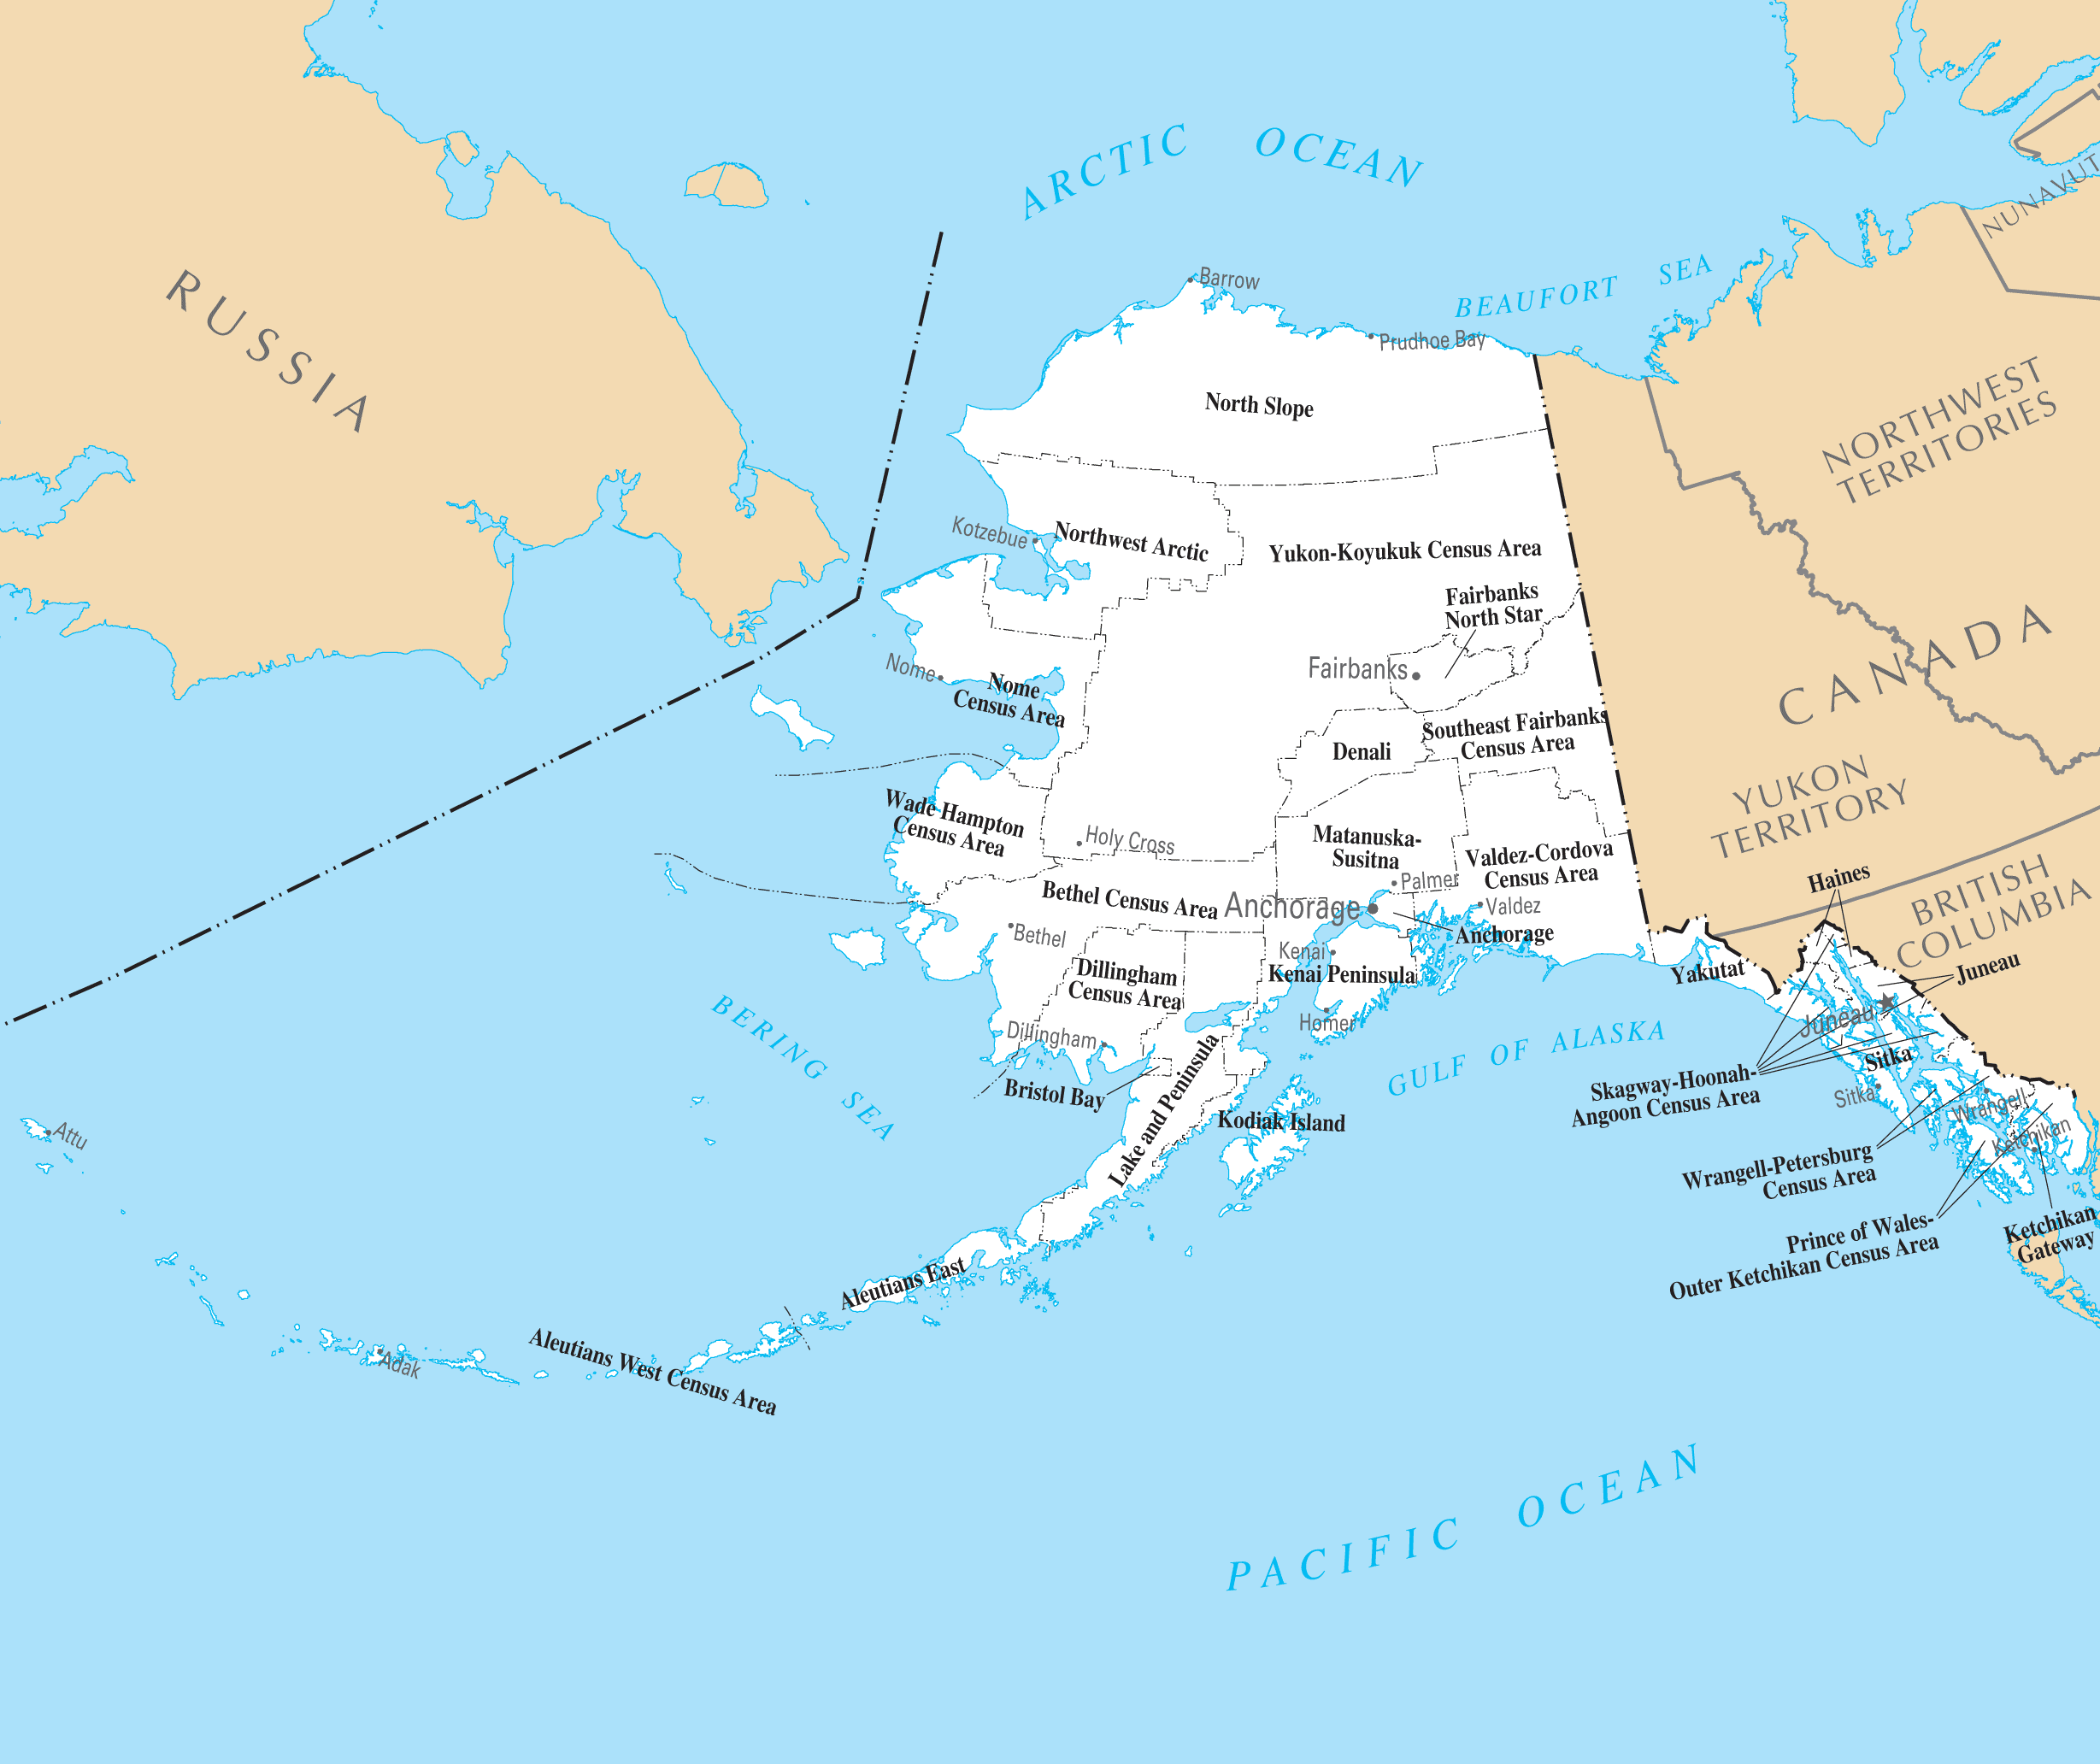 Alaska Cities By Size